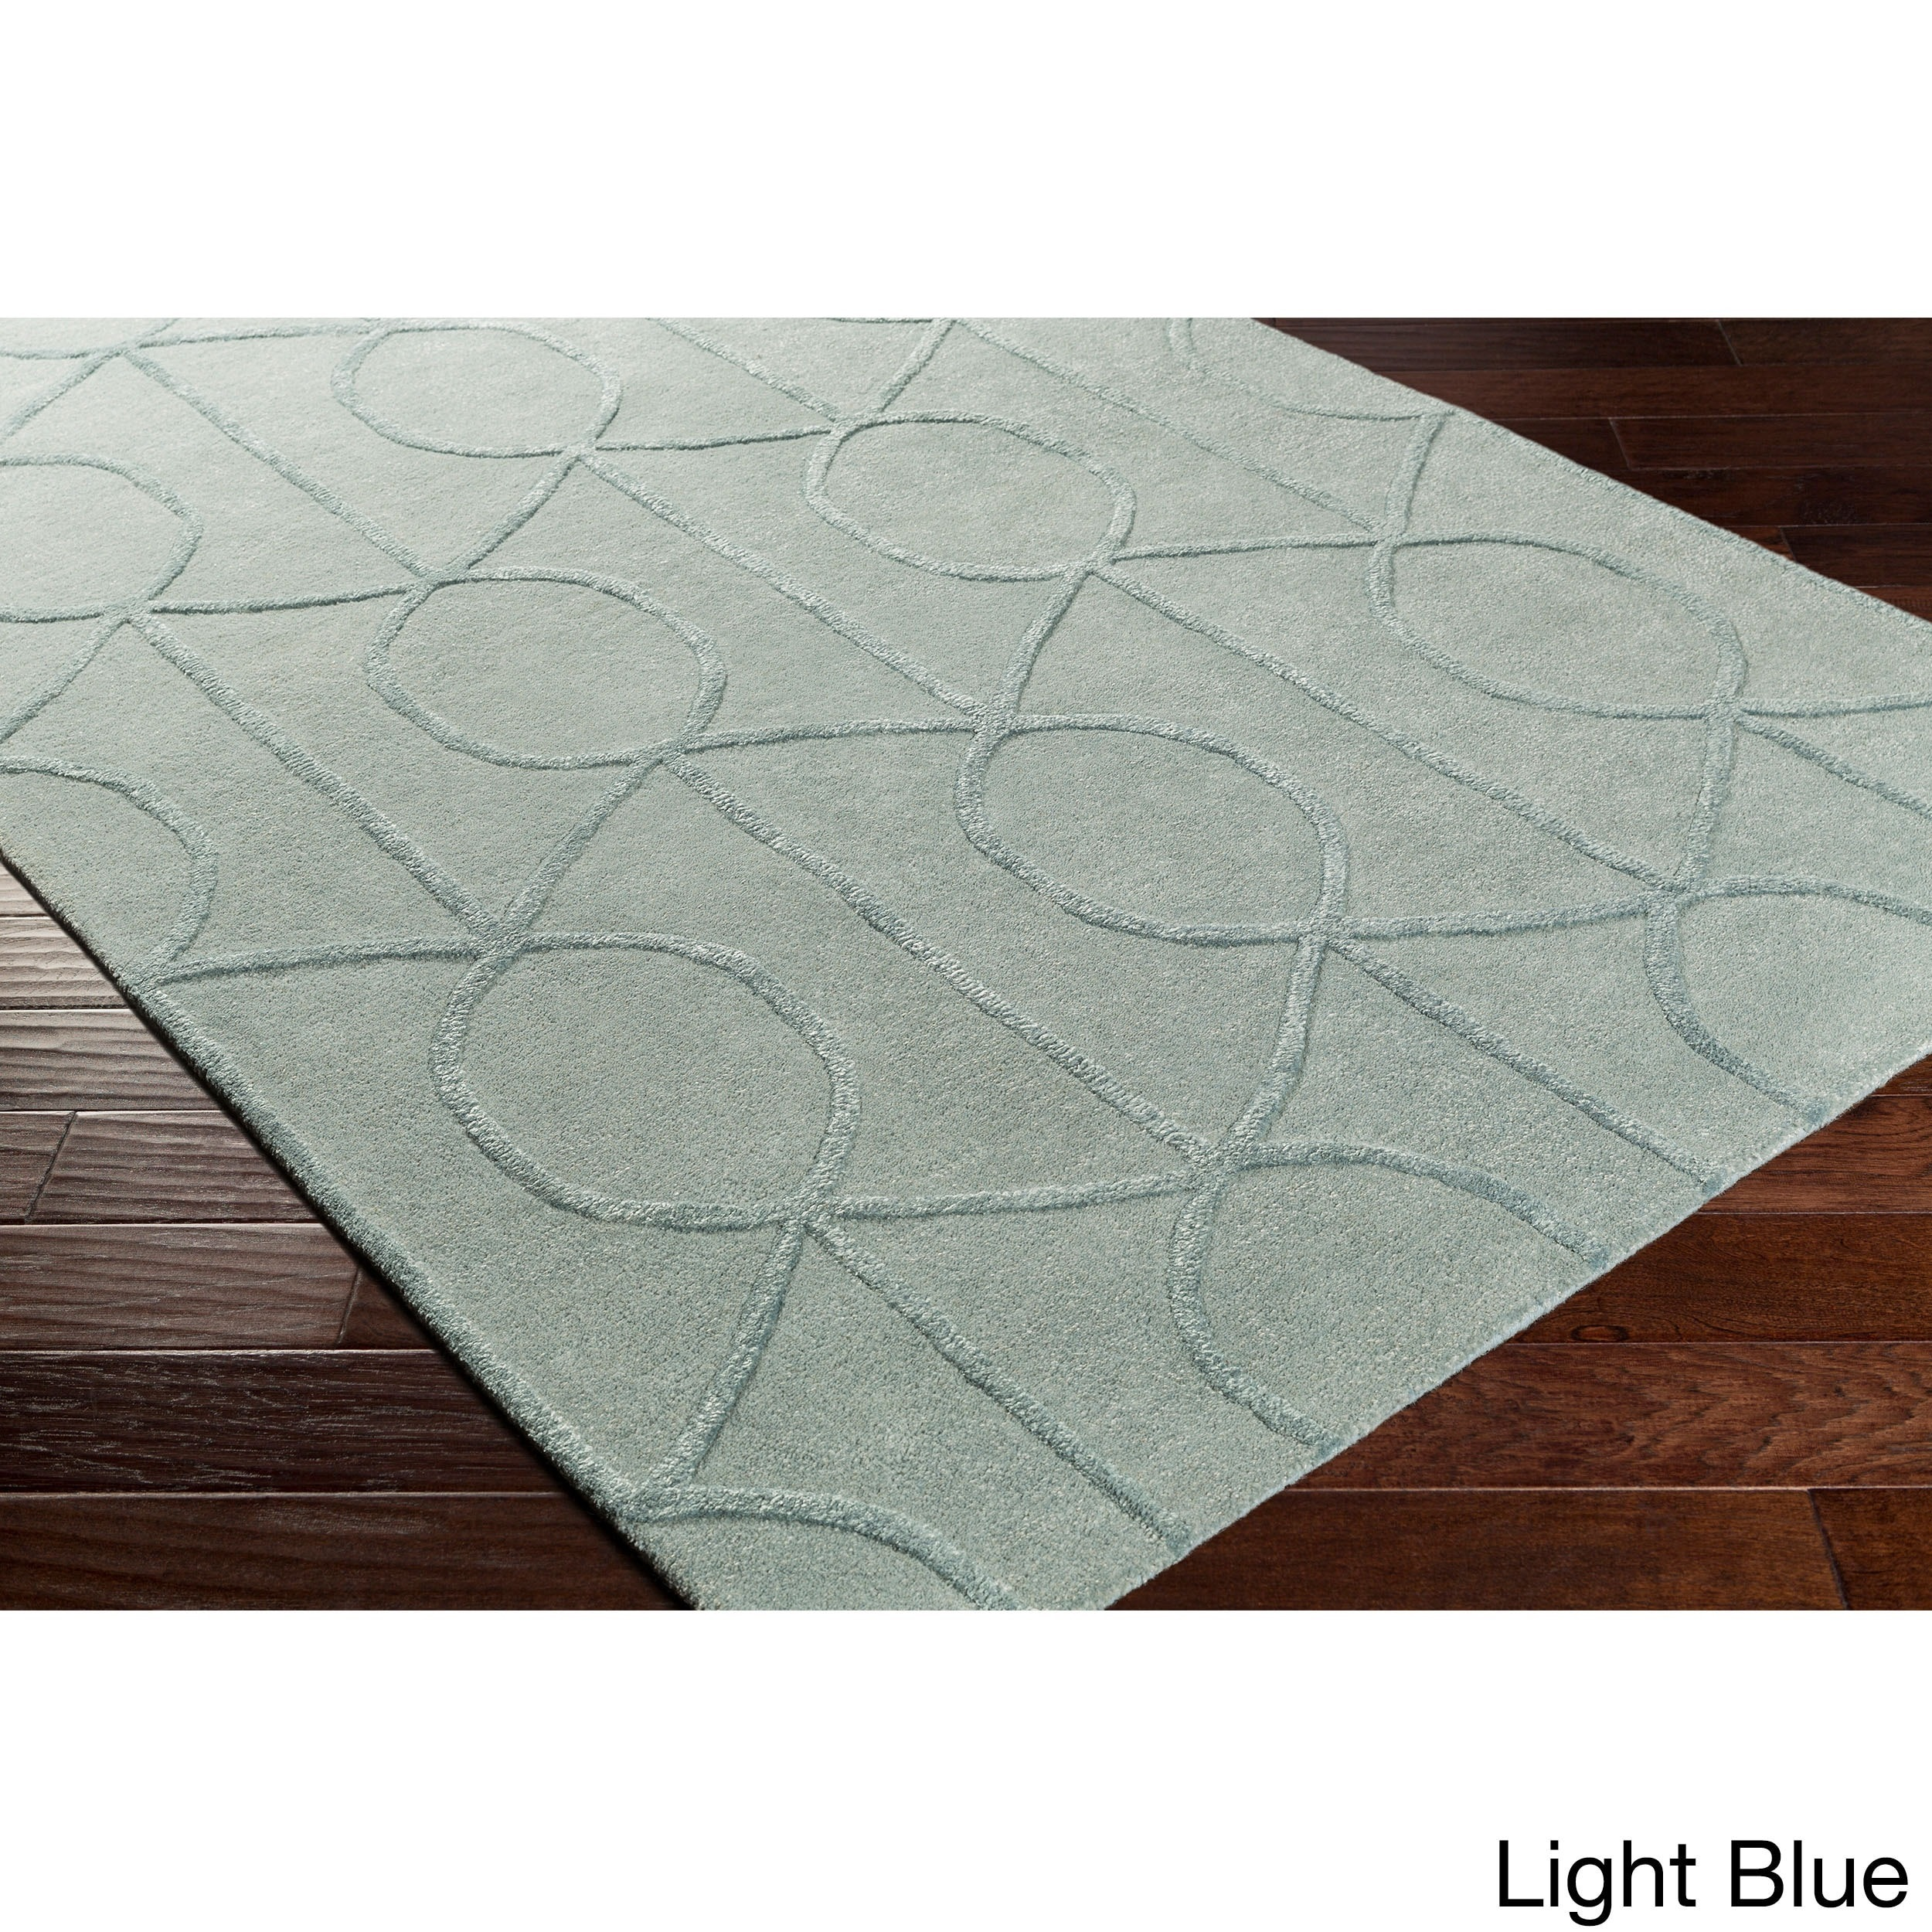 36 x 60 bath rug | compare prices at nextag